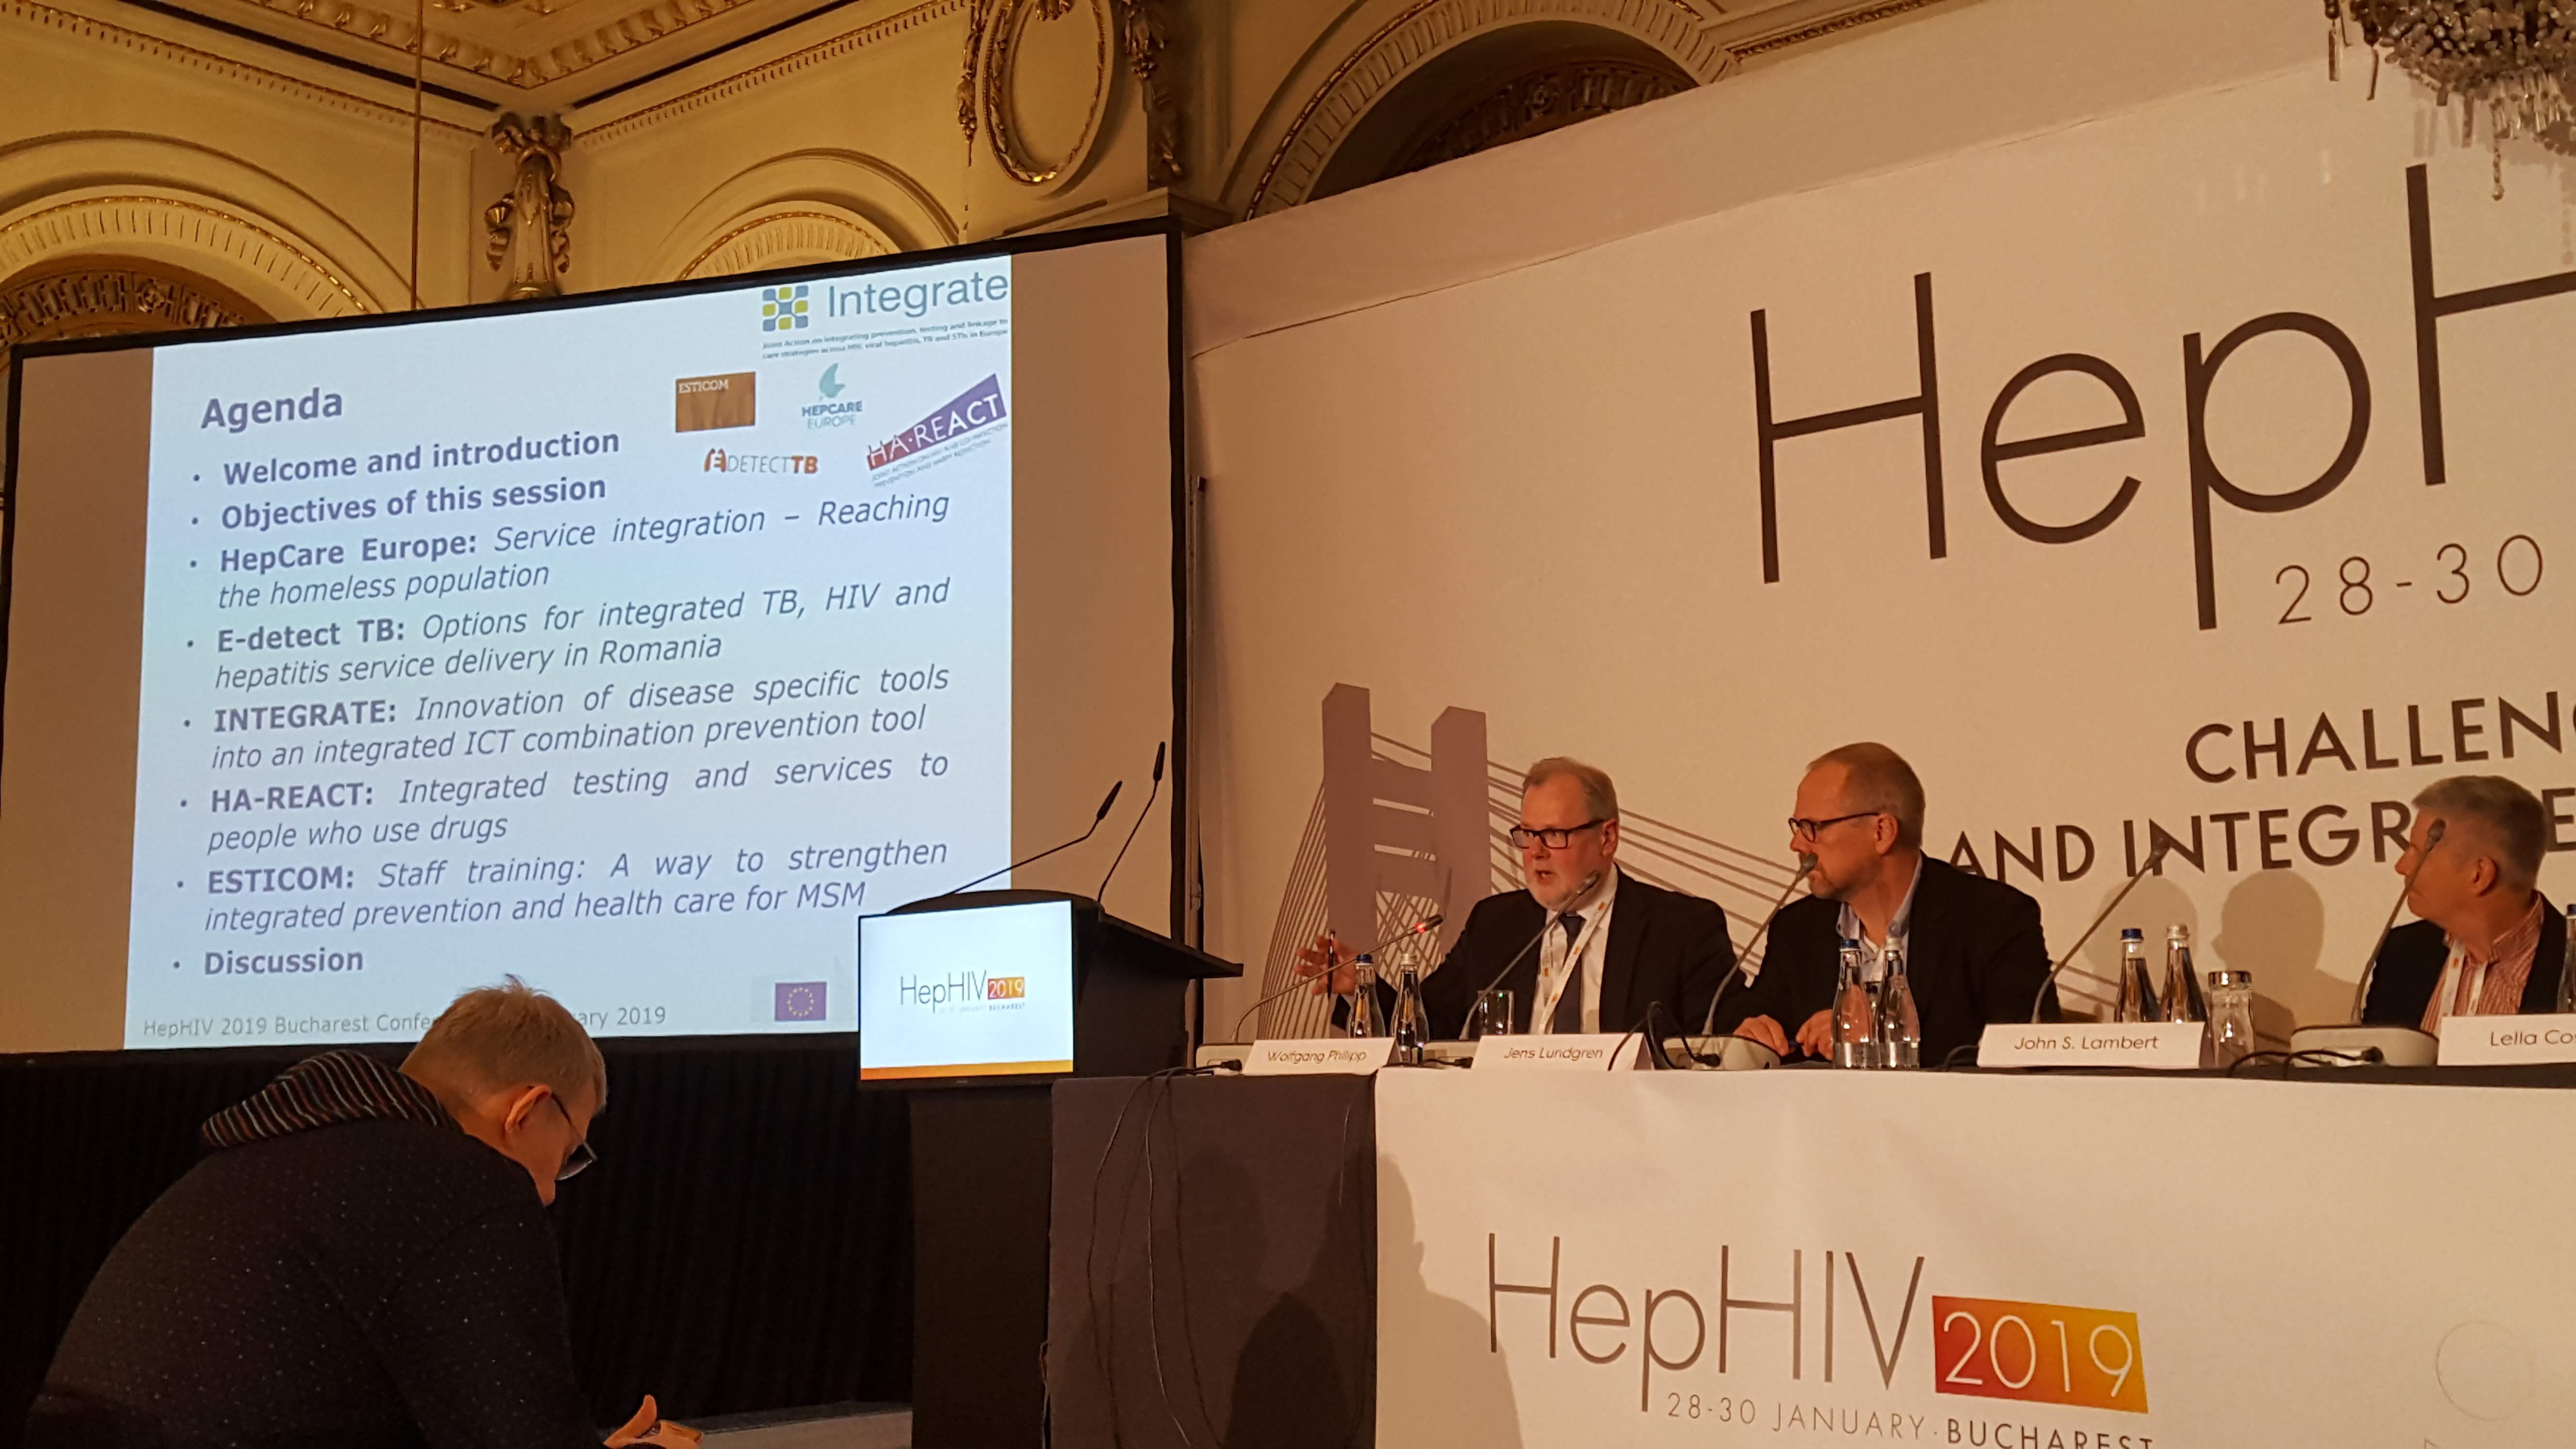 EU Joint Actions towards HIV, viral Hepatitis and TB in Europe, HepHIV 2019